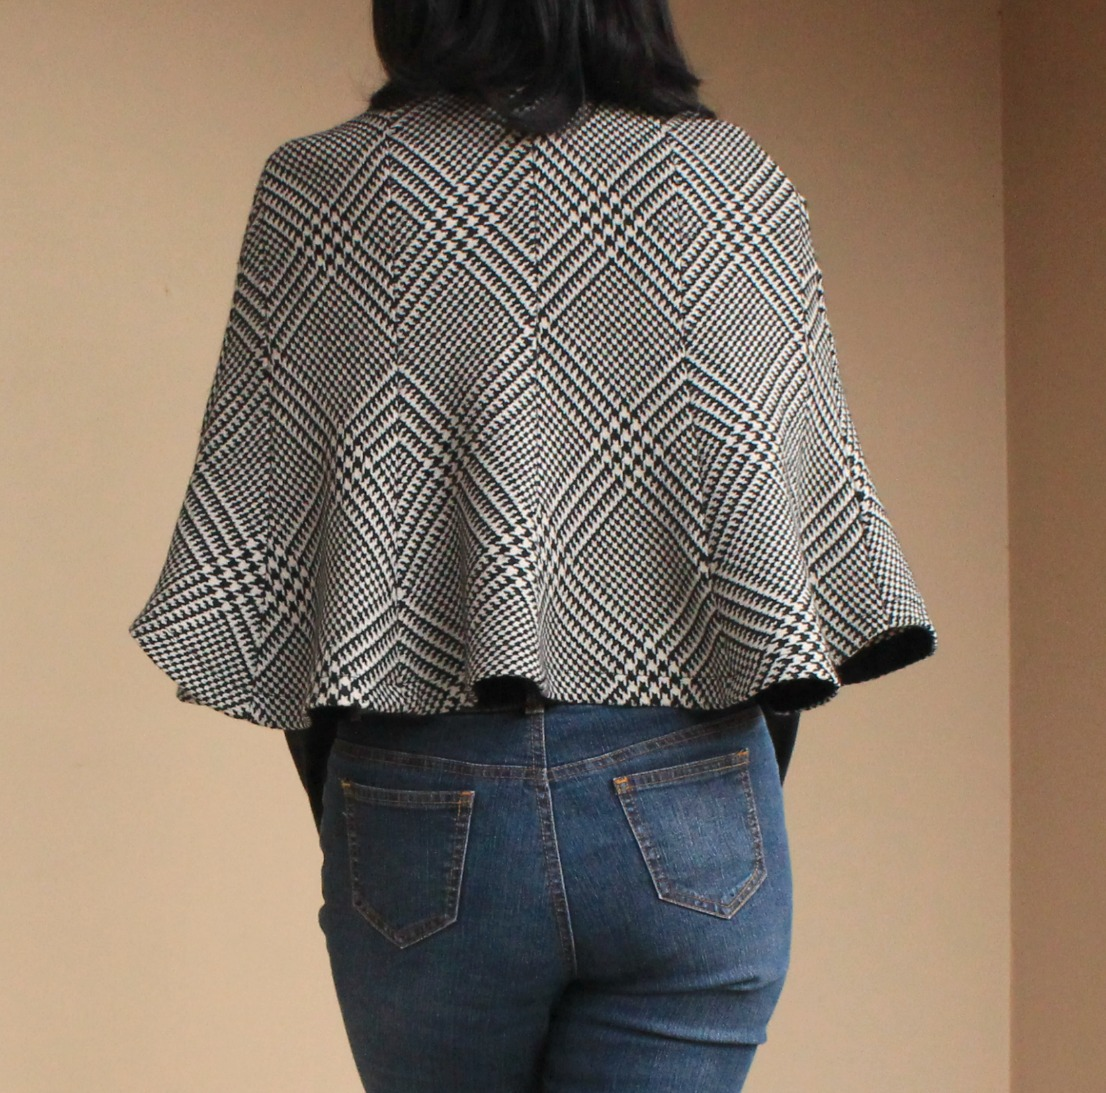 Back view of skirt to capelet refashion.